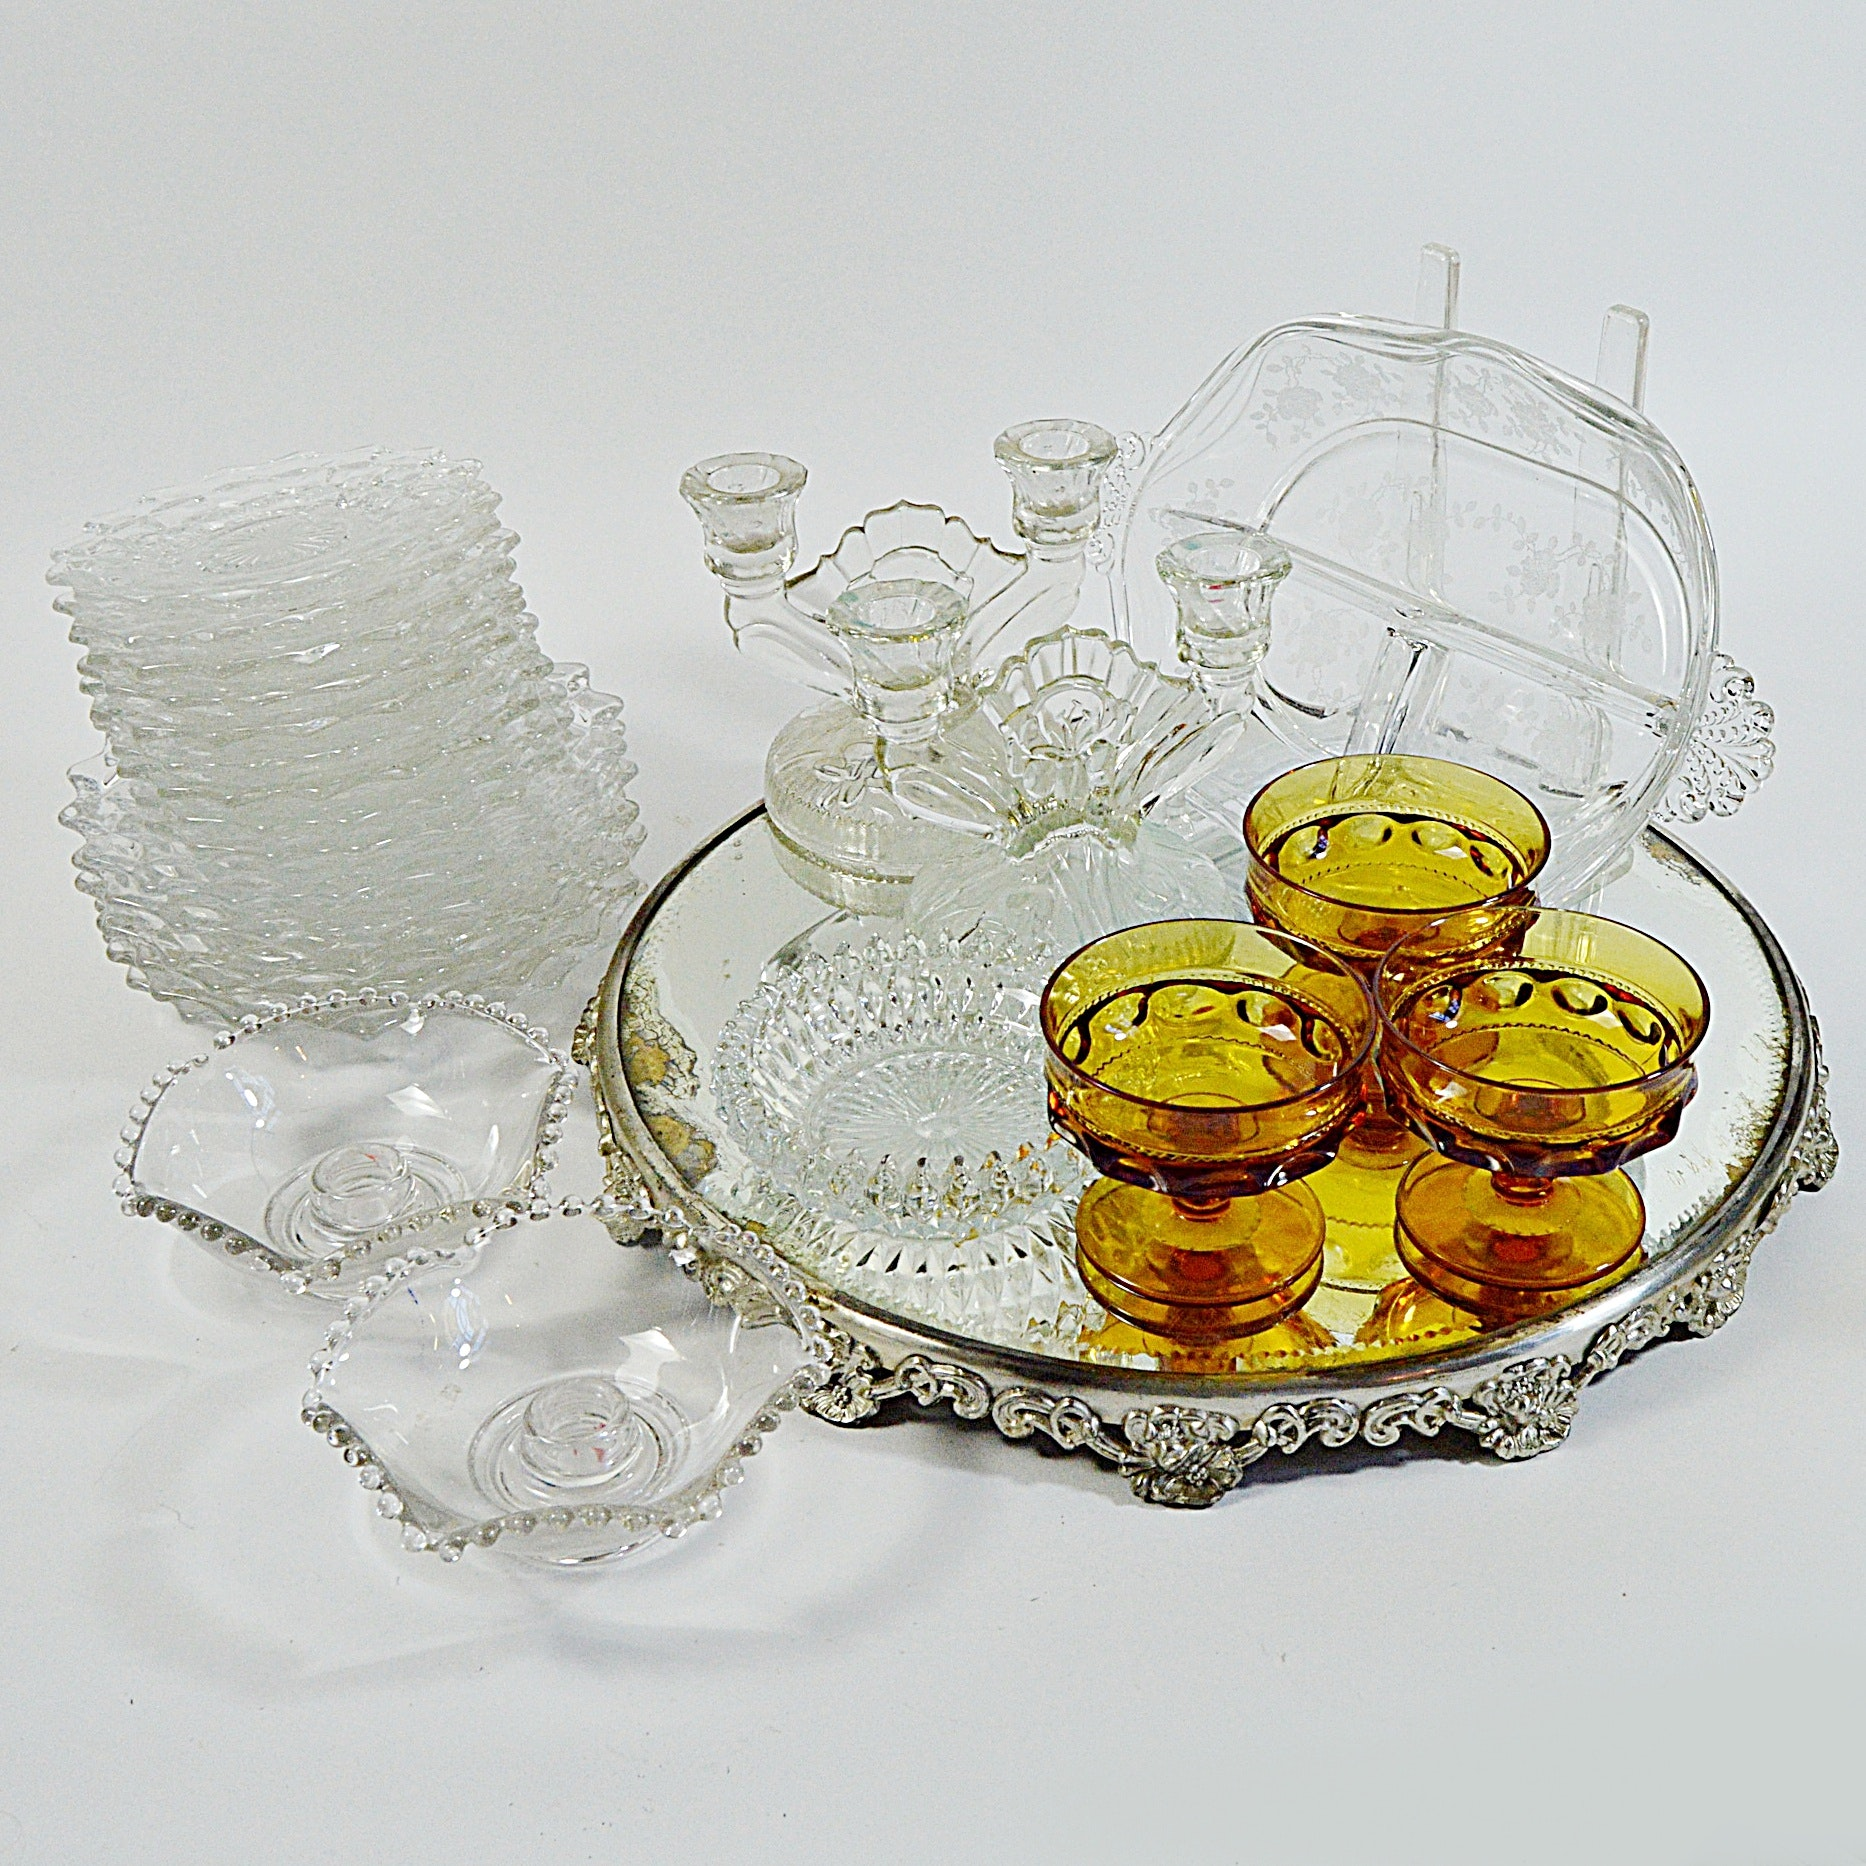 Vintage Glassware with Antique Plateau Mirror, Depression Glass